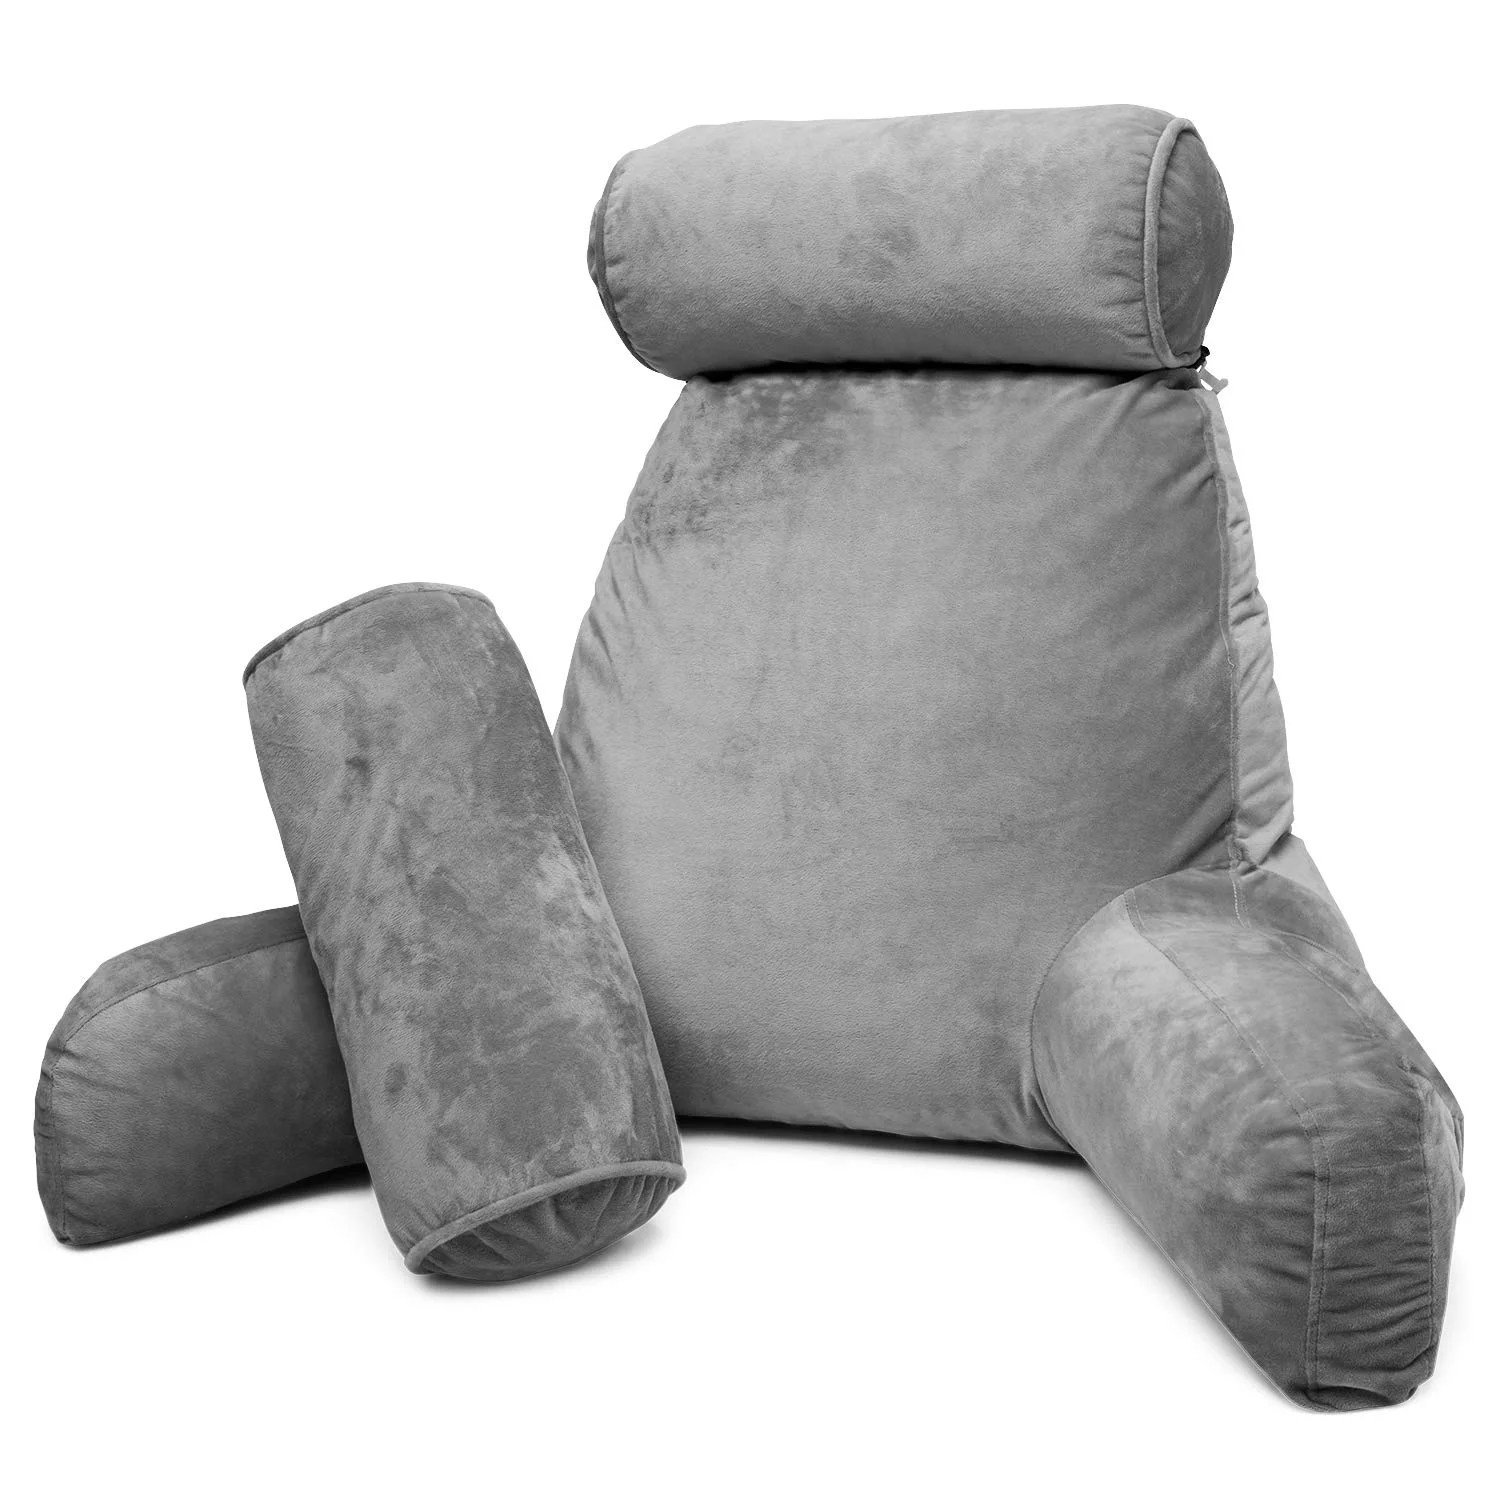 husband pillow chocolate big reading bed rest pillow with arms sit up tall with premium shredded memory foam detachable neck roll removable